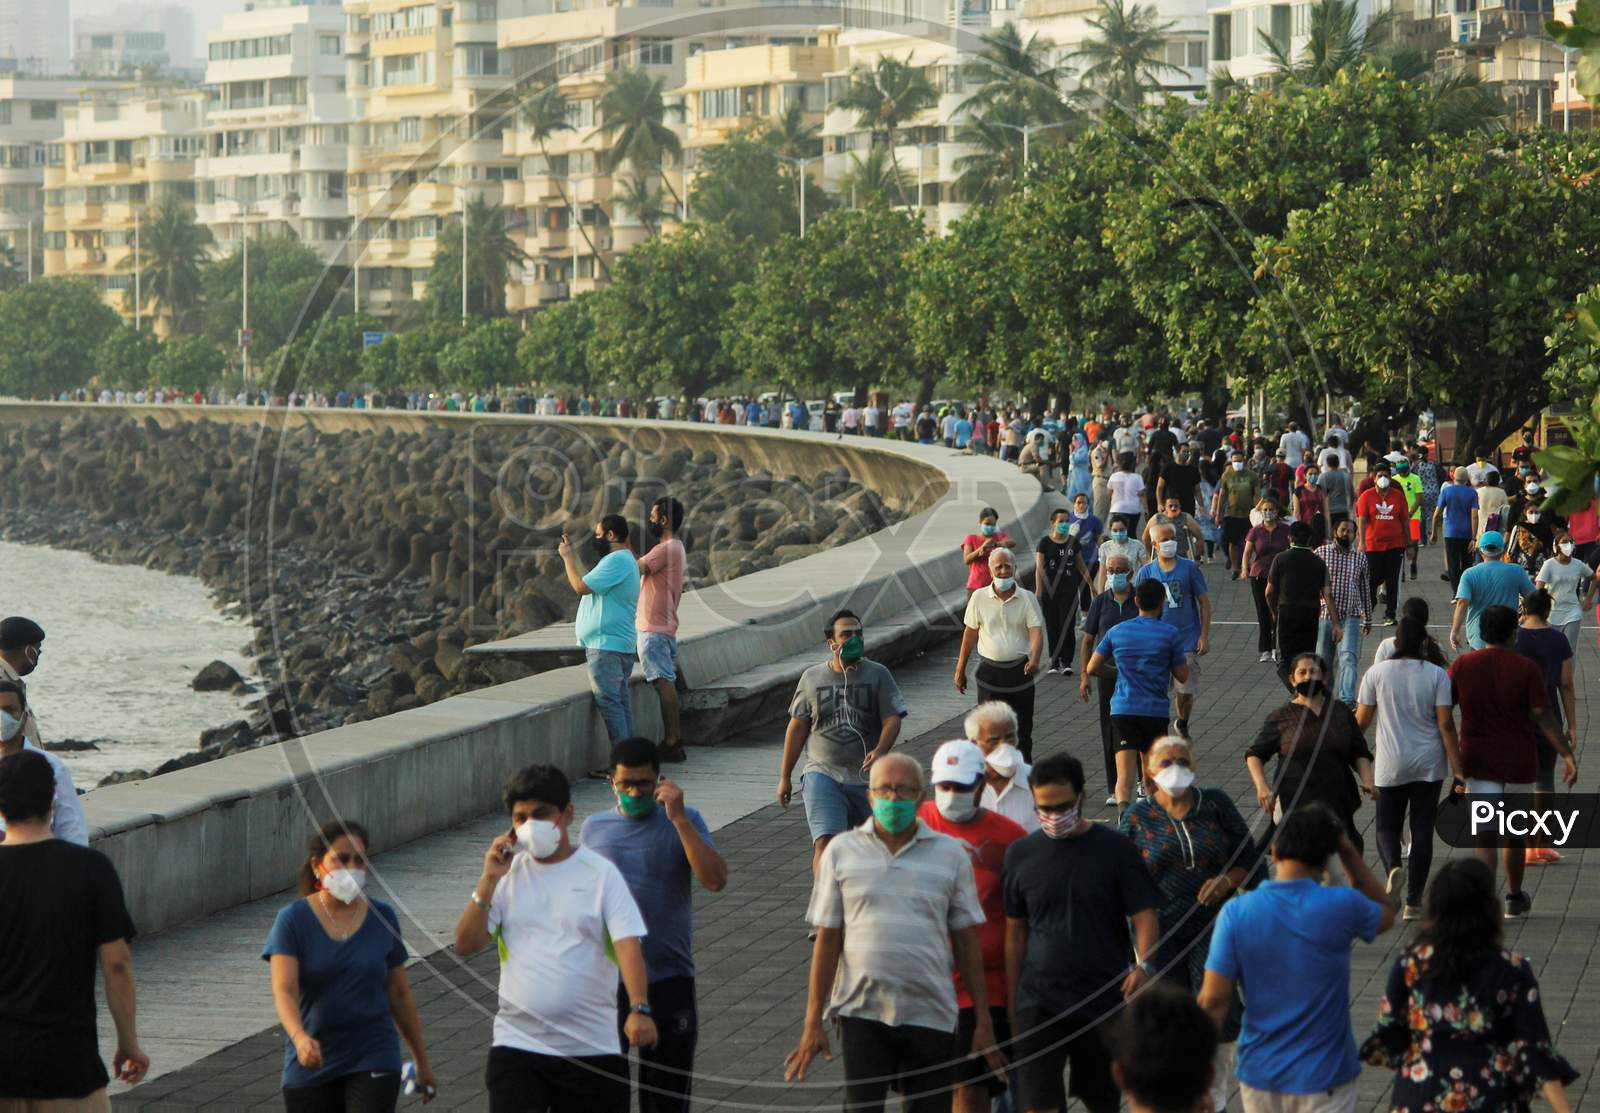 People walk along the promenade at Marine Drive after some restrictions were lifted in Mumbai, India on June 6, 2020.